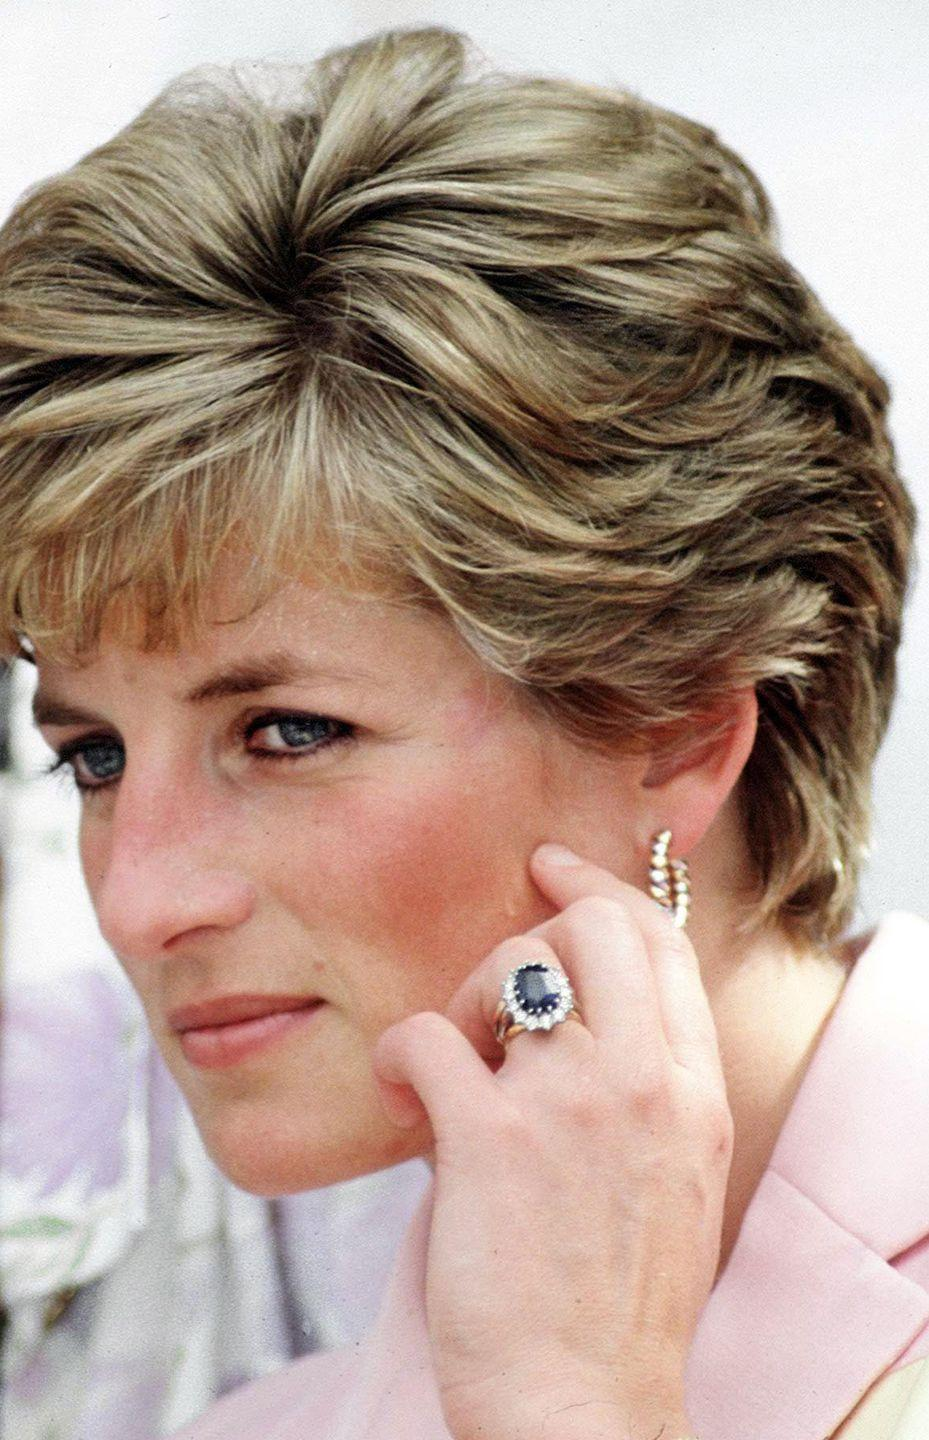 <p>While a younger generation may know this iconic ring as belonging to the Duchess of Cambridge, it first belonged to Diana. The 12-carat blue Ceylon ring would be a stunner on its own, but the 25 brilliant, cushion-cut diamonds surrounding it ensures this ring is royal-worthy. Plus, it serves as a sentimental reminder of Diana's lasting legacy within the royal family to this day. </p>